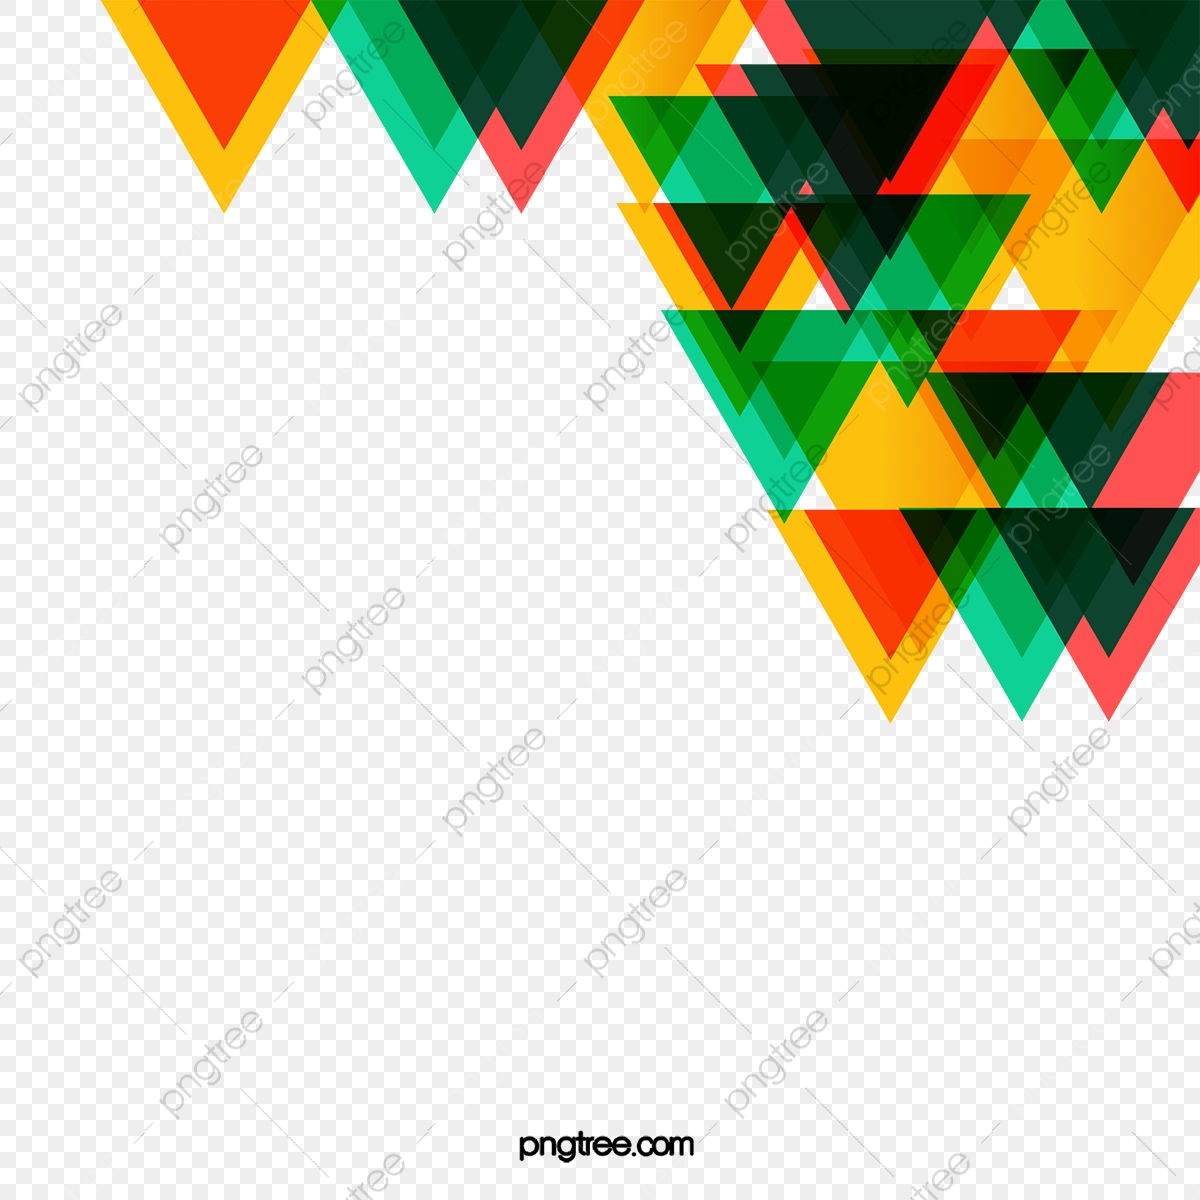 Vector Background Template, Pretty, Hd, Colorful PNG and.